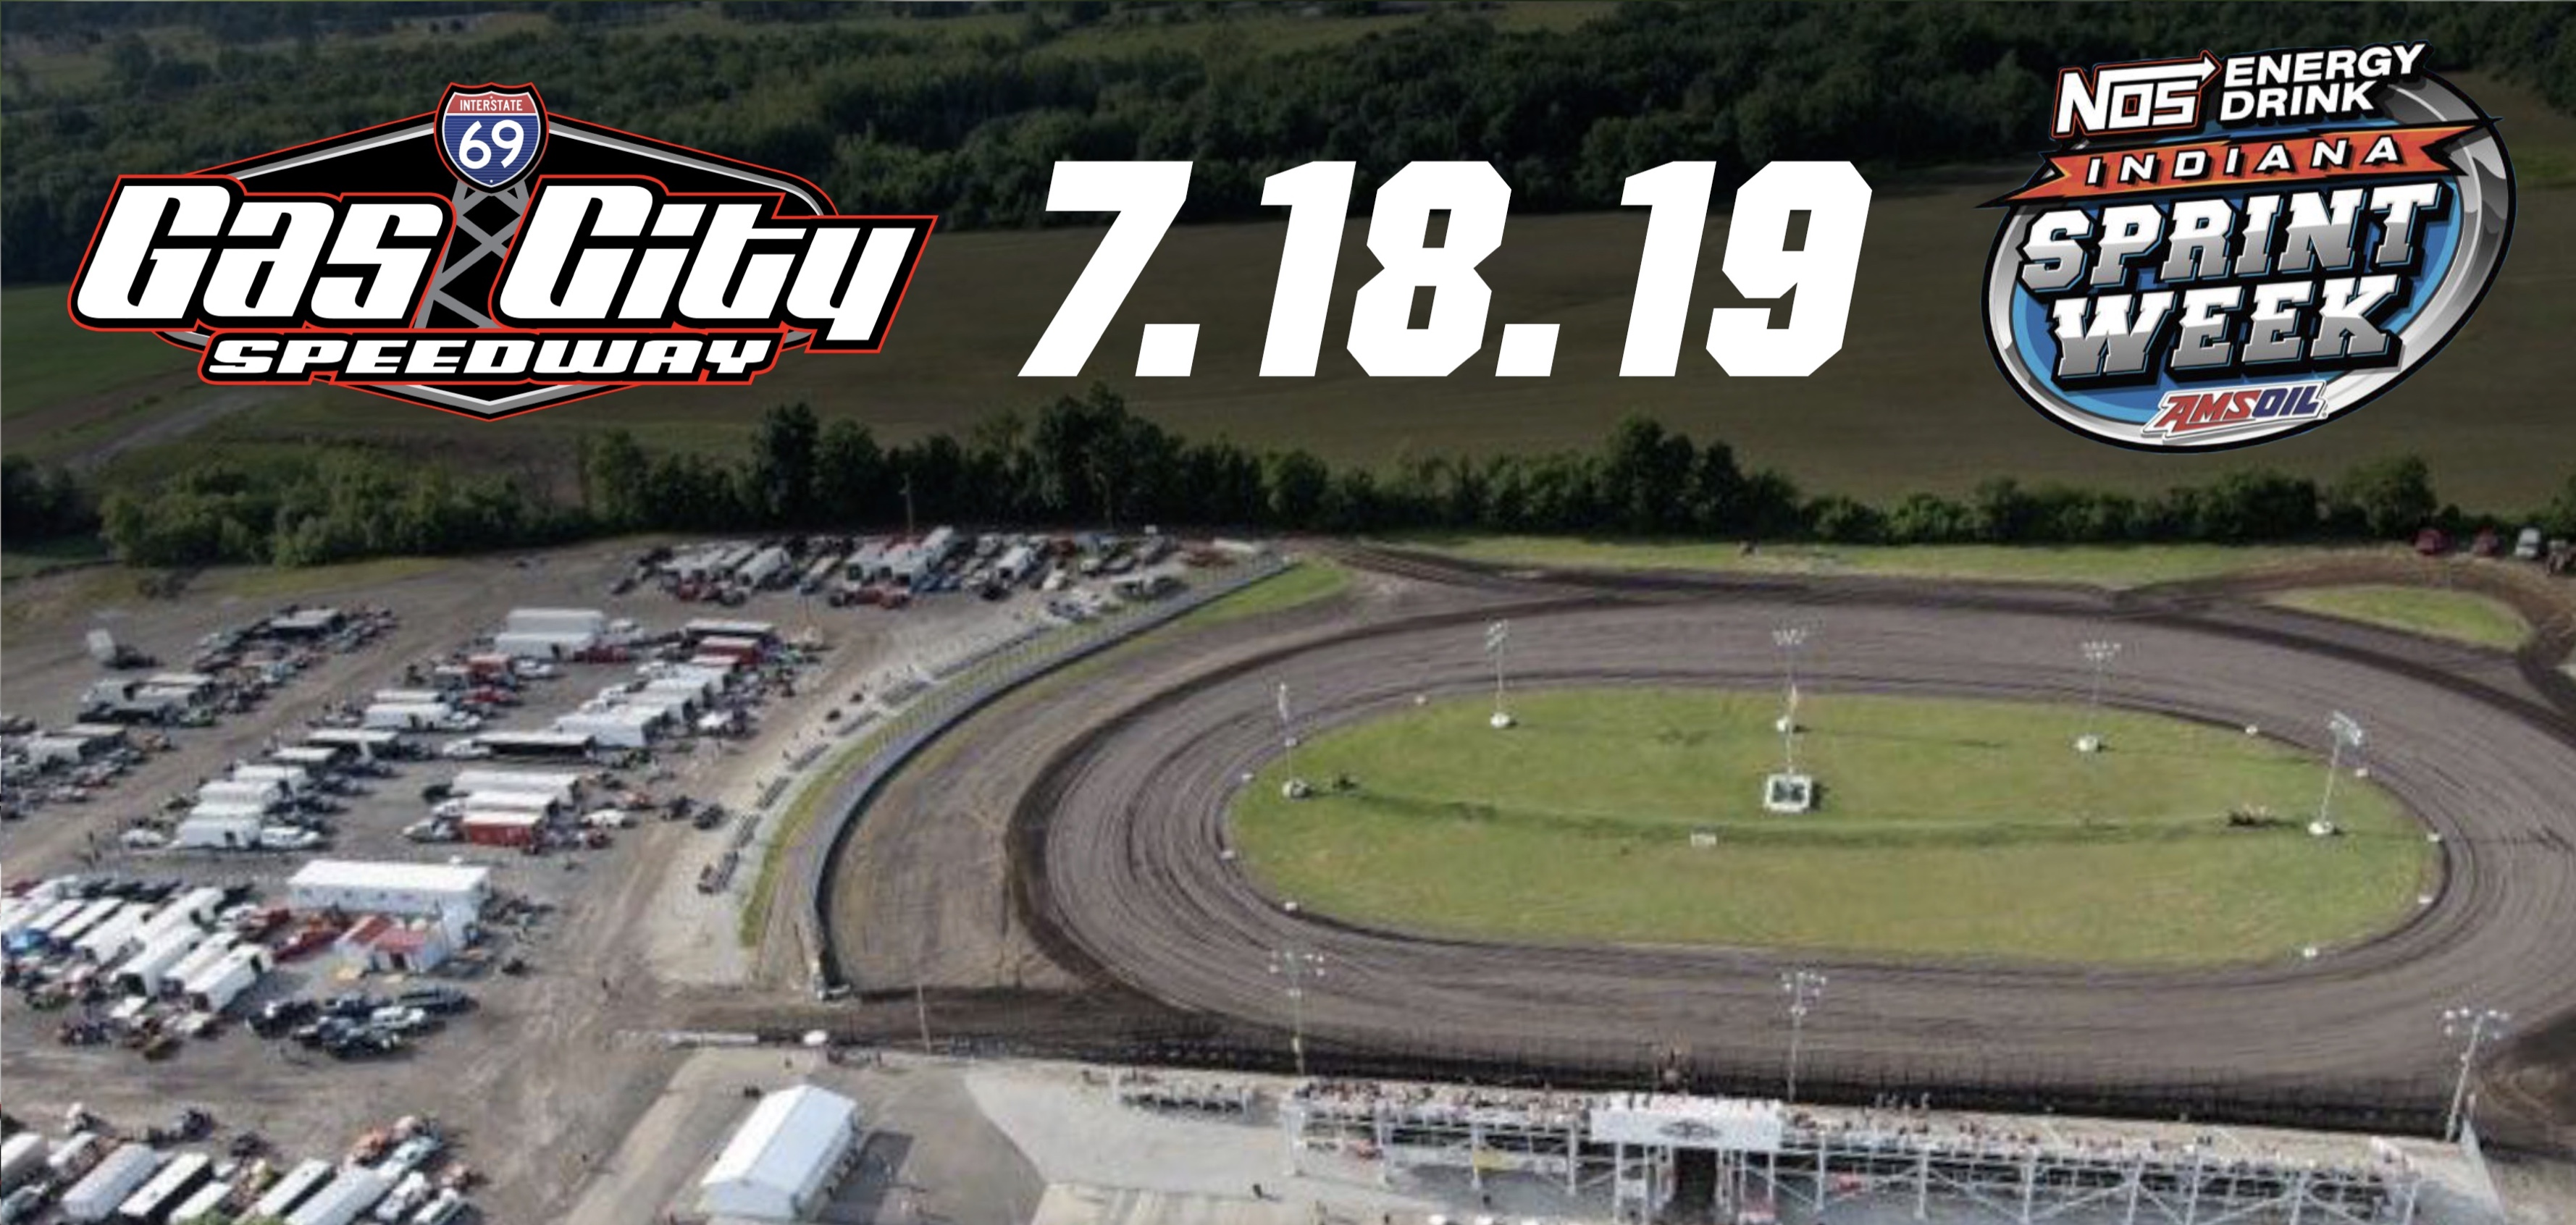 Gas City I-69 Speedway Officials Make It The 'Cool Place